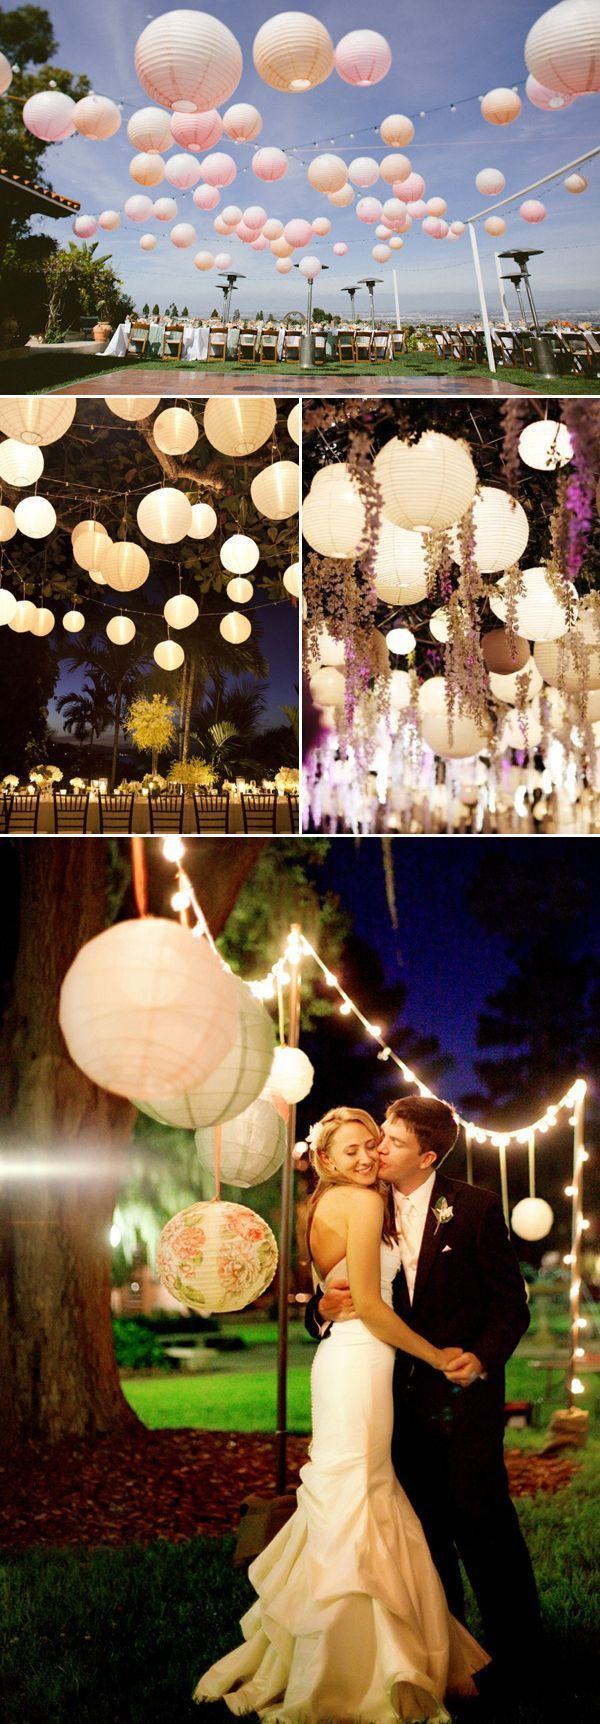 diy outdoor wedding lighting. 14 fun and romantic ways to decorate your wedding with lanterns diy outdoor lighting